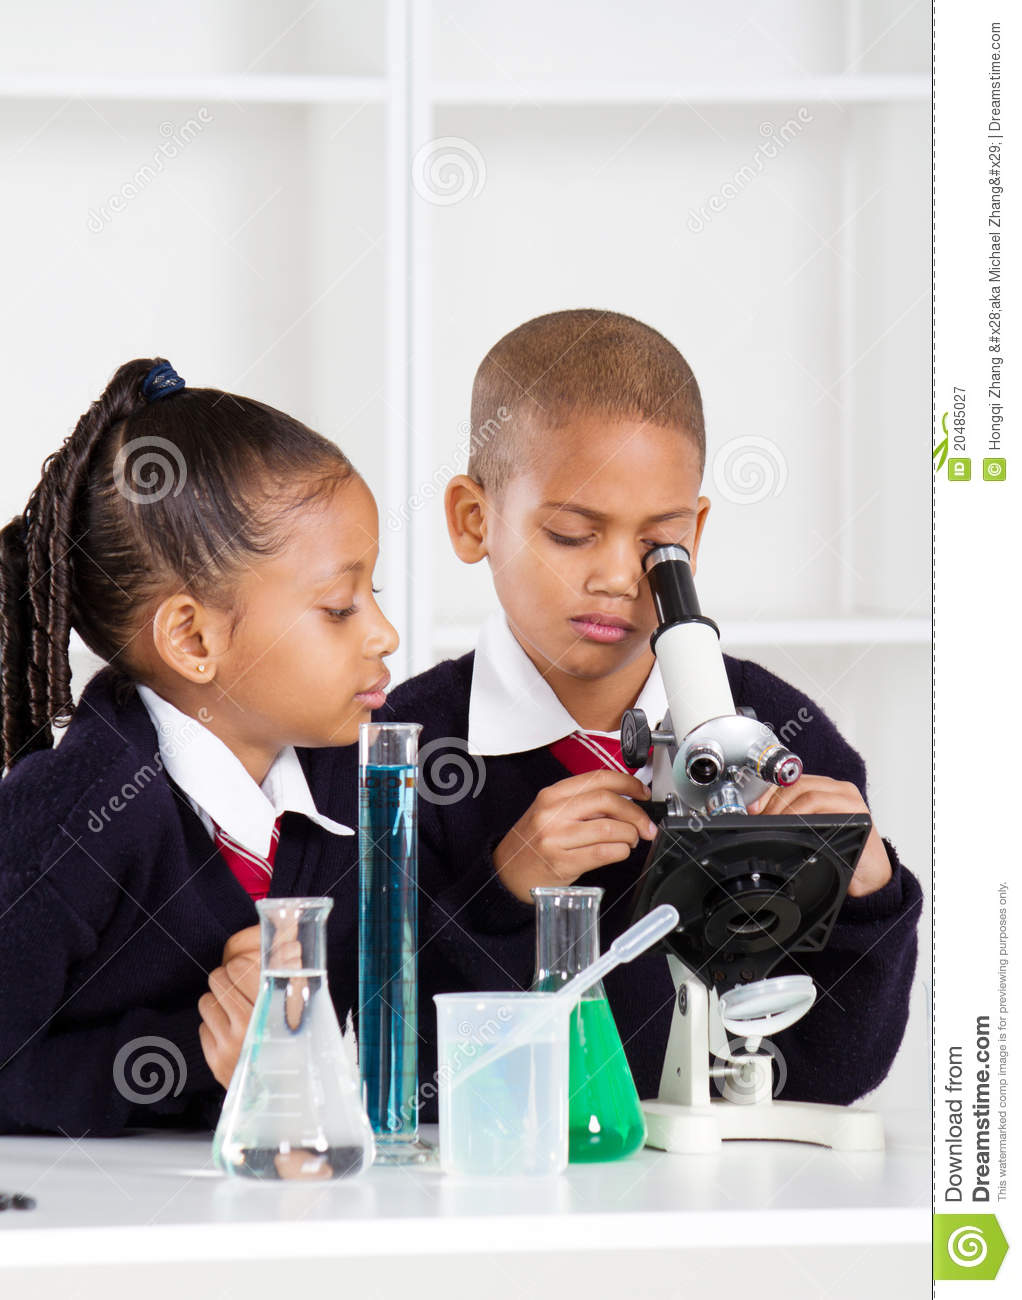 School kids in science class